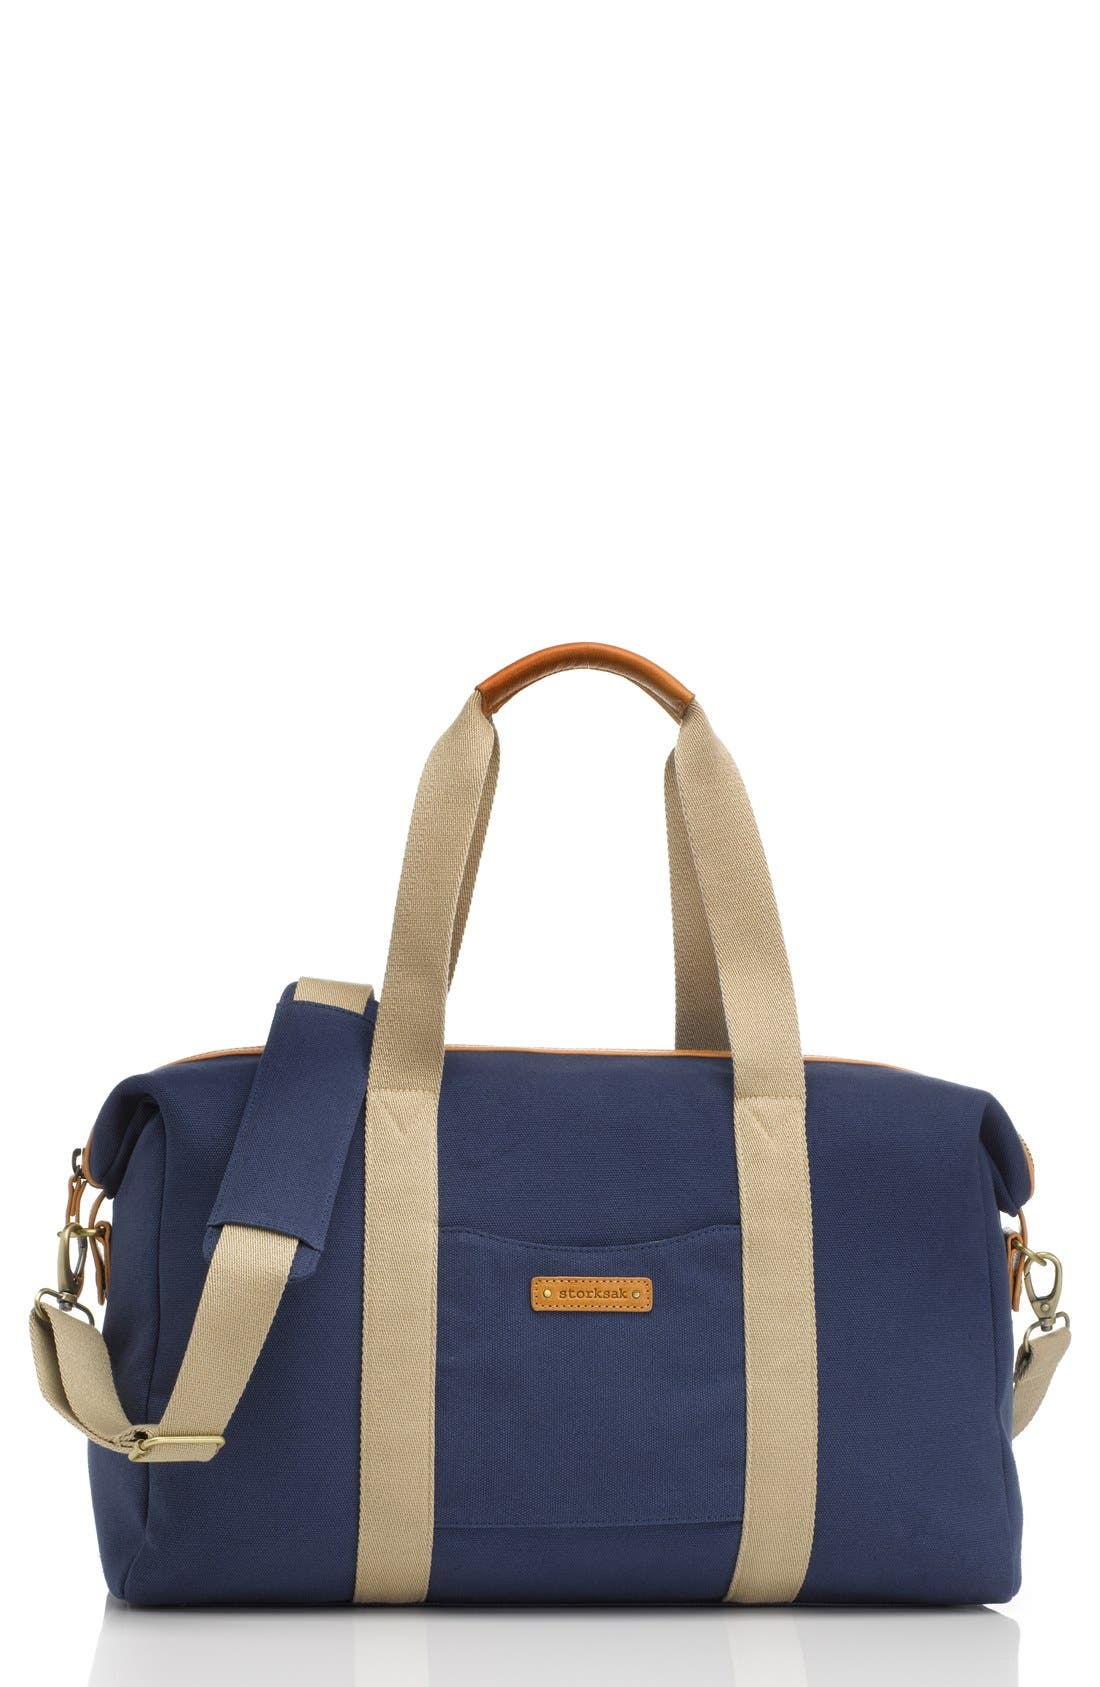 Alternate Image 1 Selected - Storksak 'Bailey' Weekend Tote